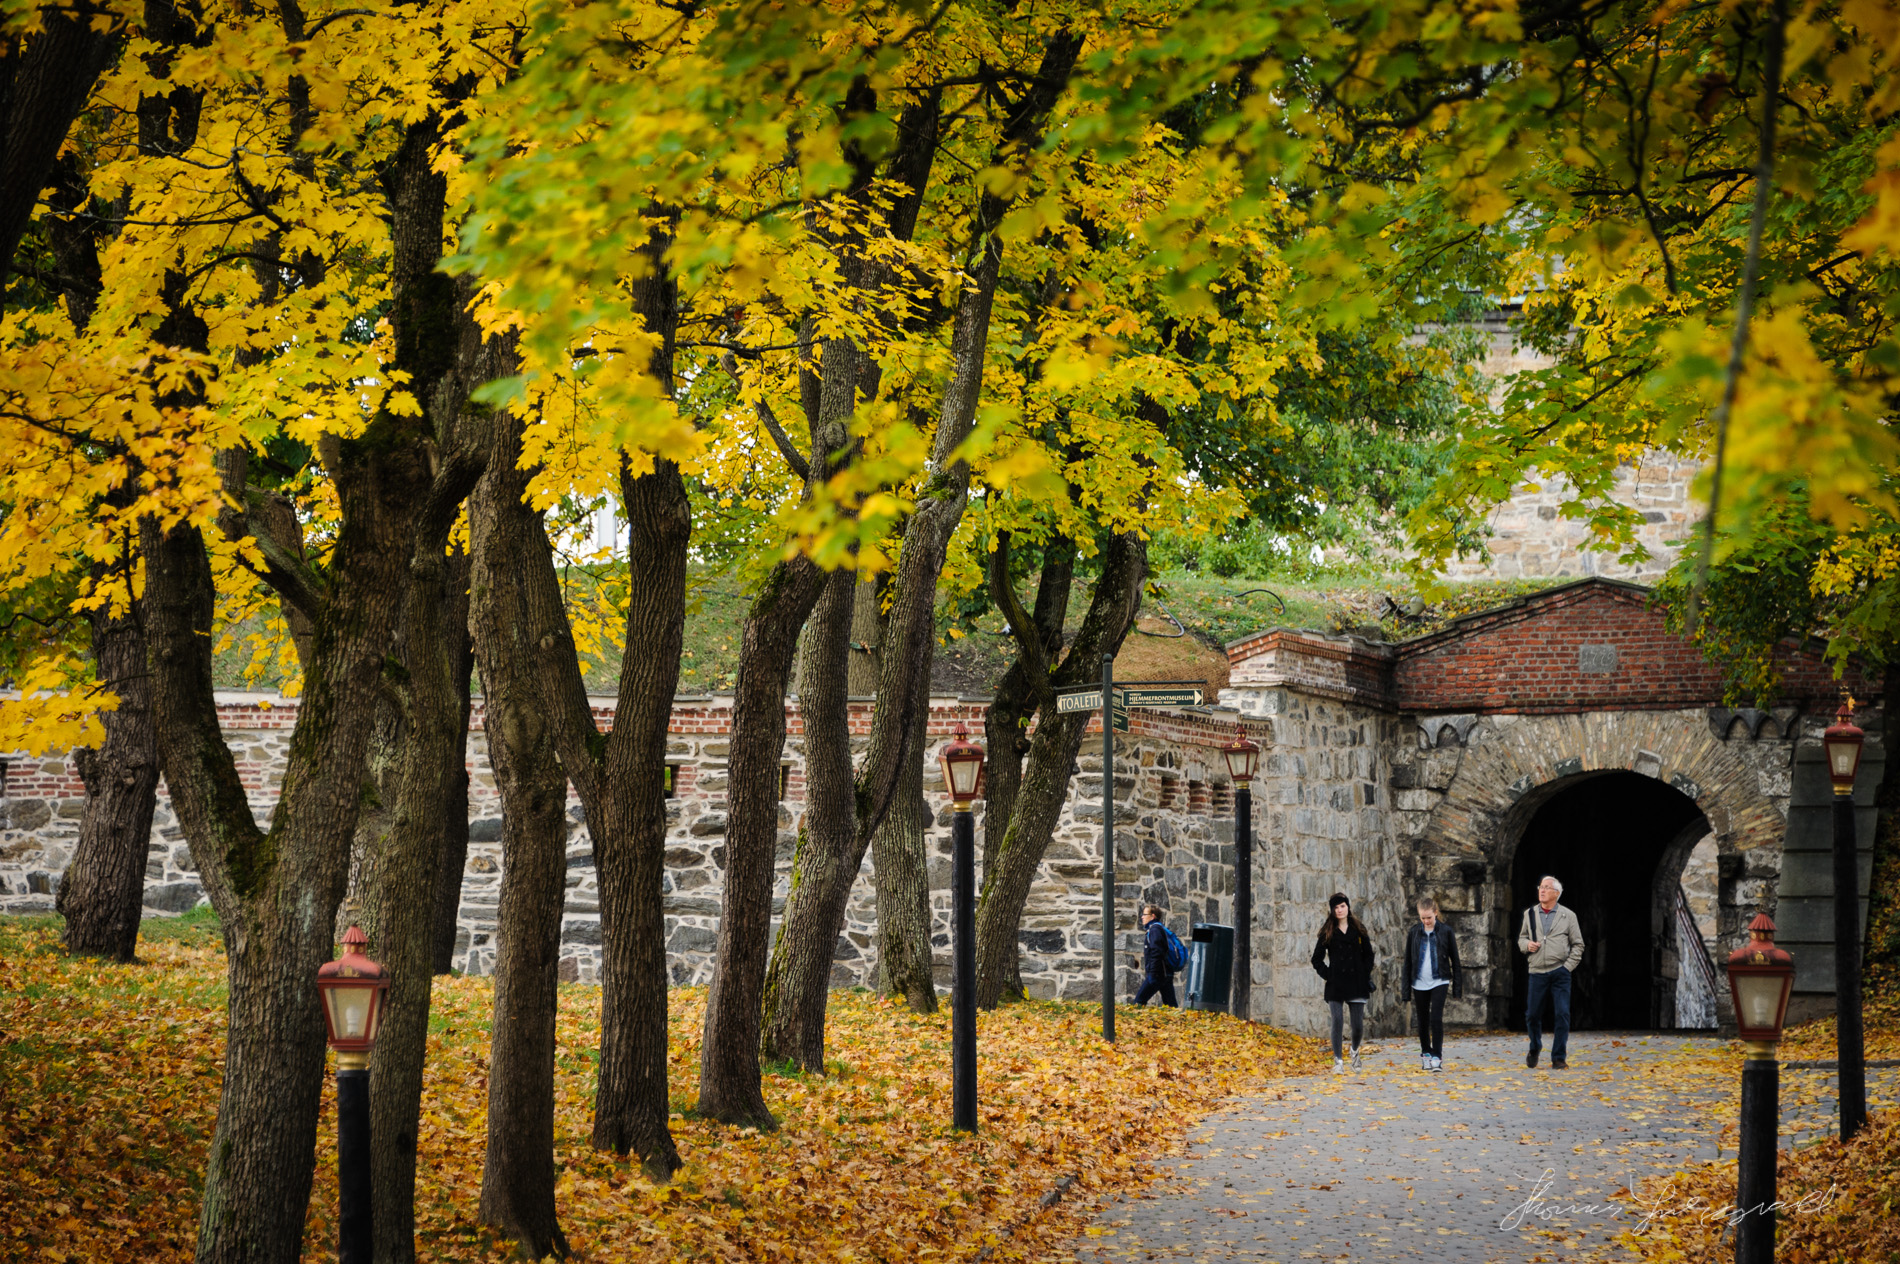 Entrance to Oslo Fortress